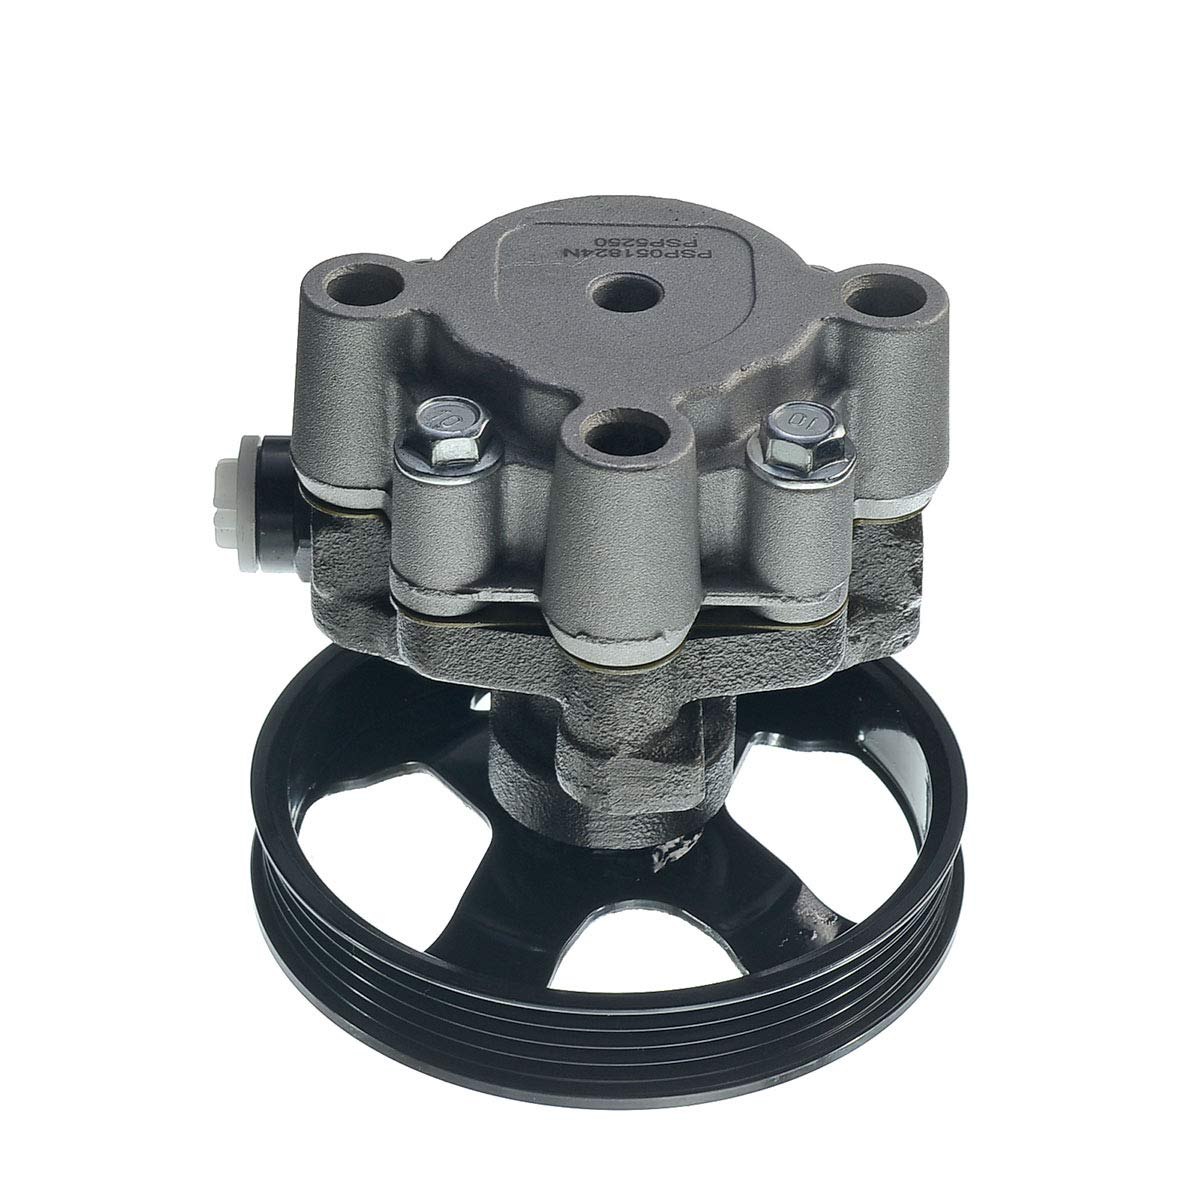 A-Premium Power Steering Pump with Pulley for Toyota Tacoma 2001-2004 l4 2.4L